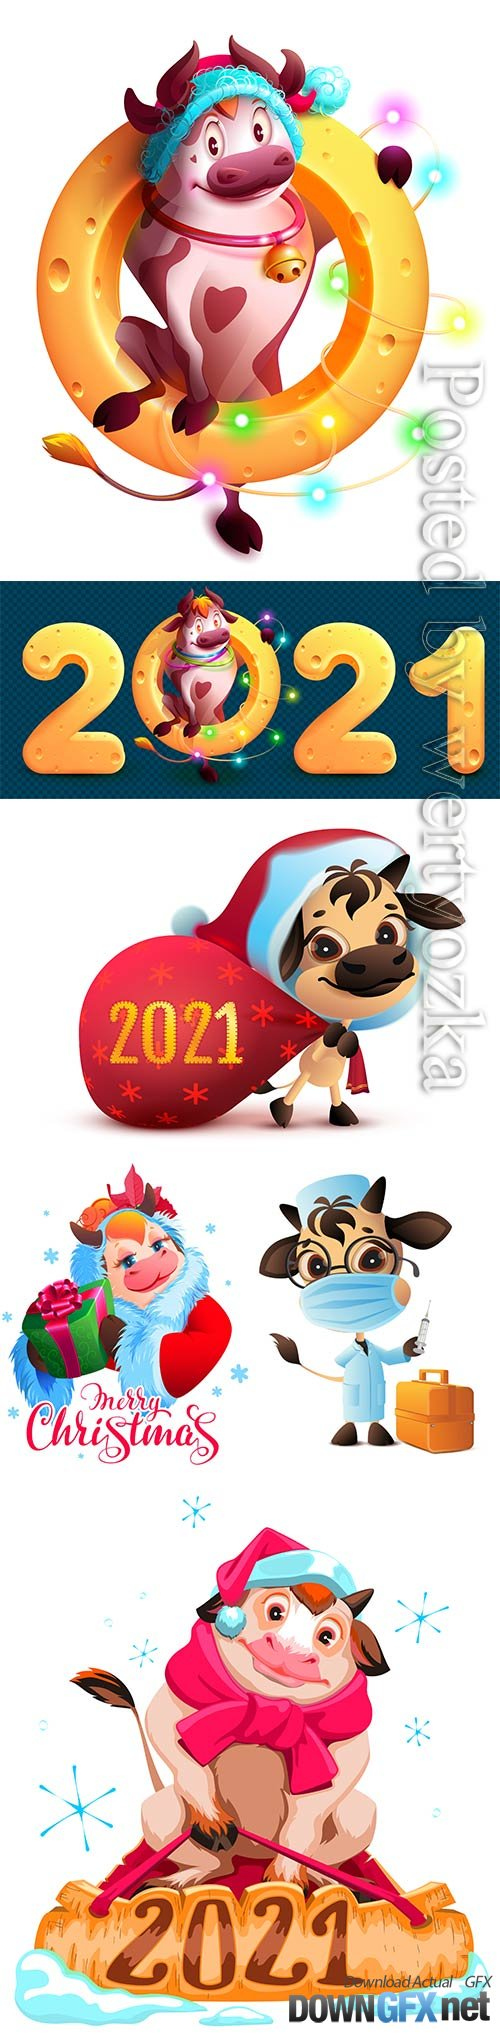 Merry christmas text santa cow symbol 2021 vector illustration